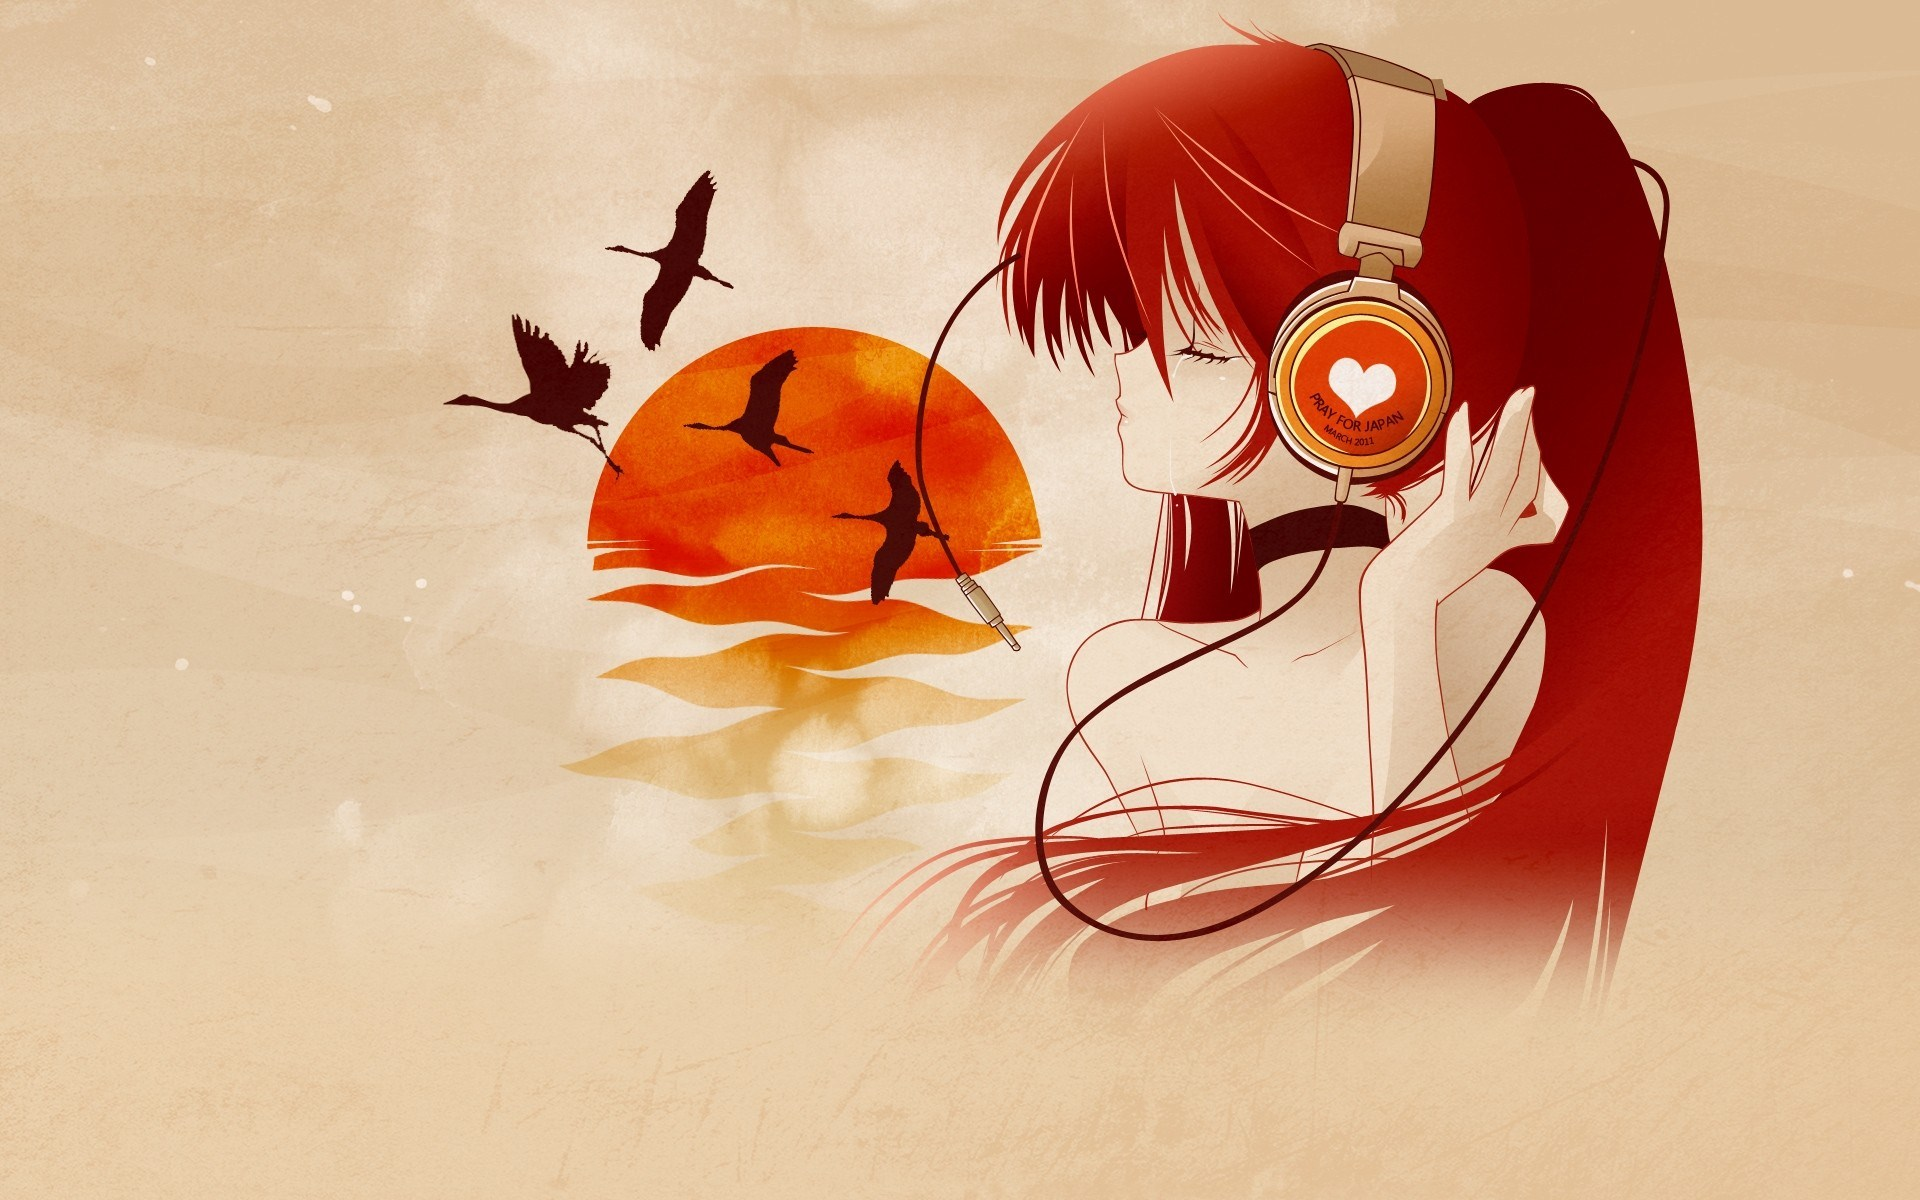 Drawn music awesome Headphones  Drawing Headphones With